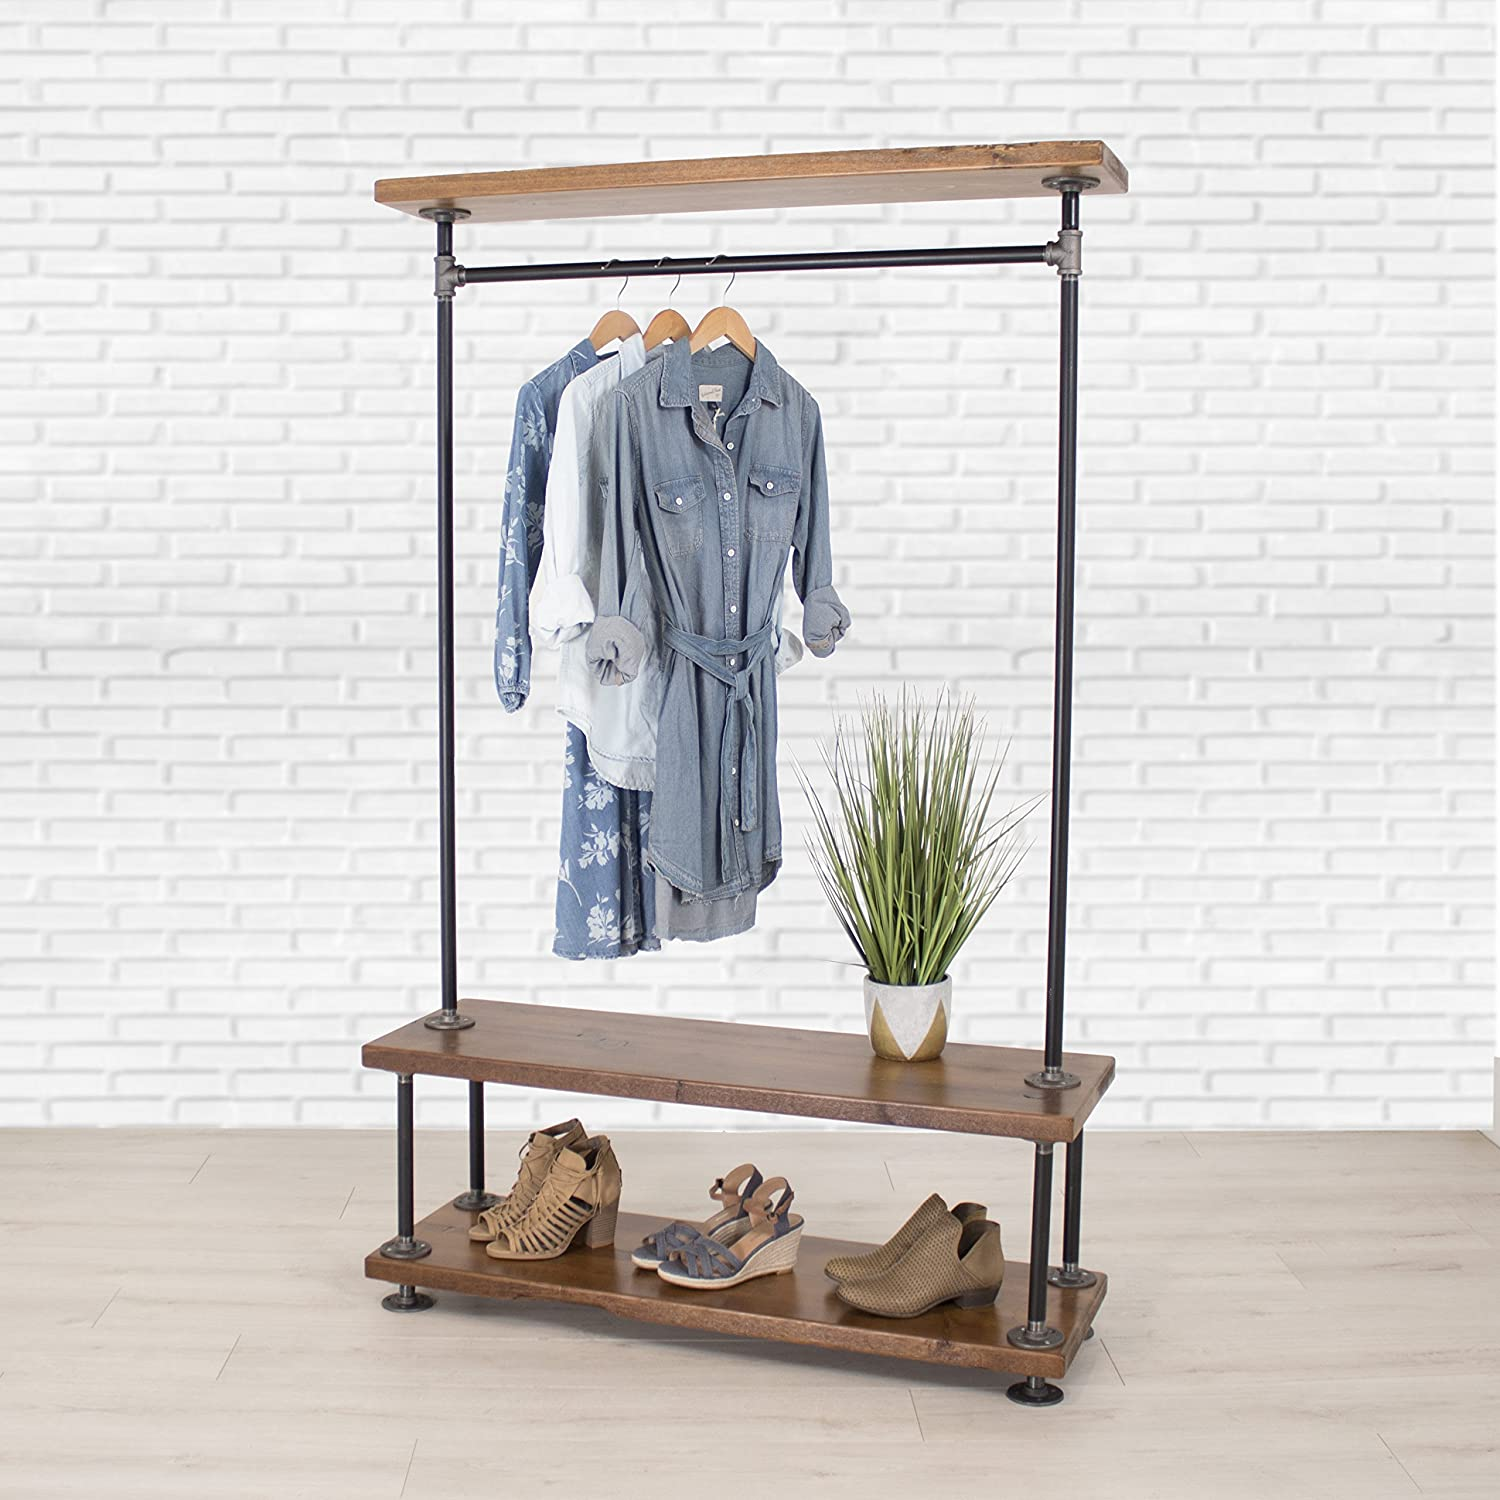 Amazoncom Industrial Pipe Clothing Rack With Cedar Wood Shelving By